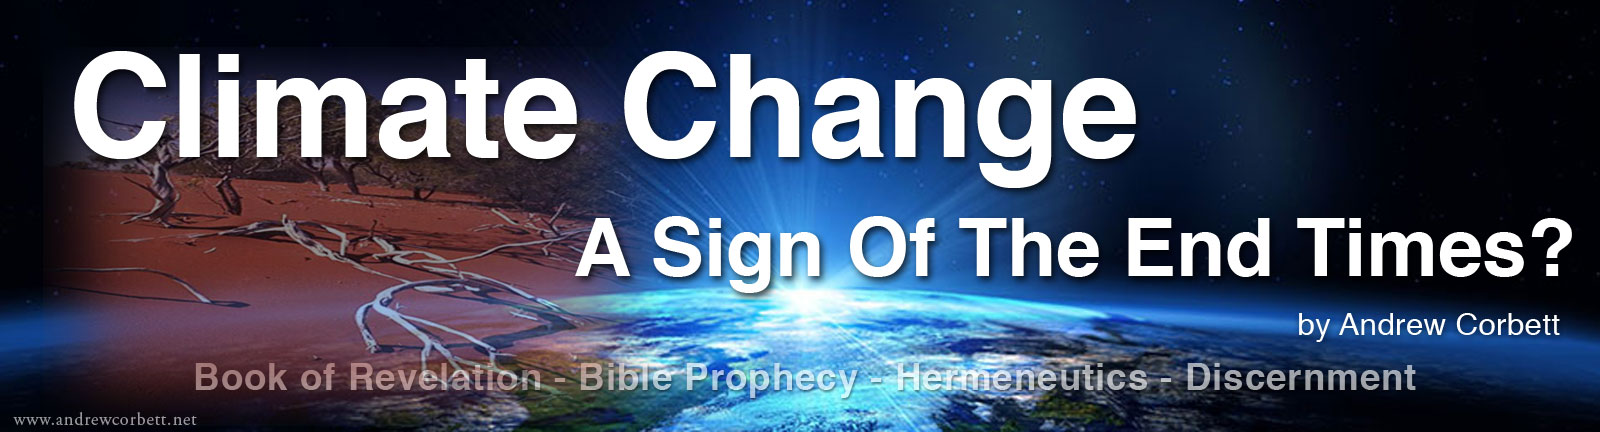 Is Climate Change A Sign Of The End Times?